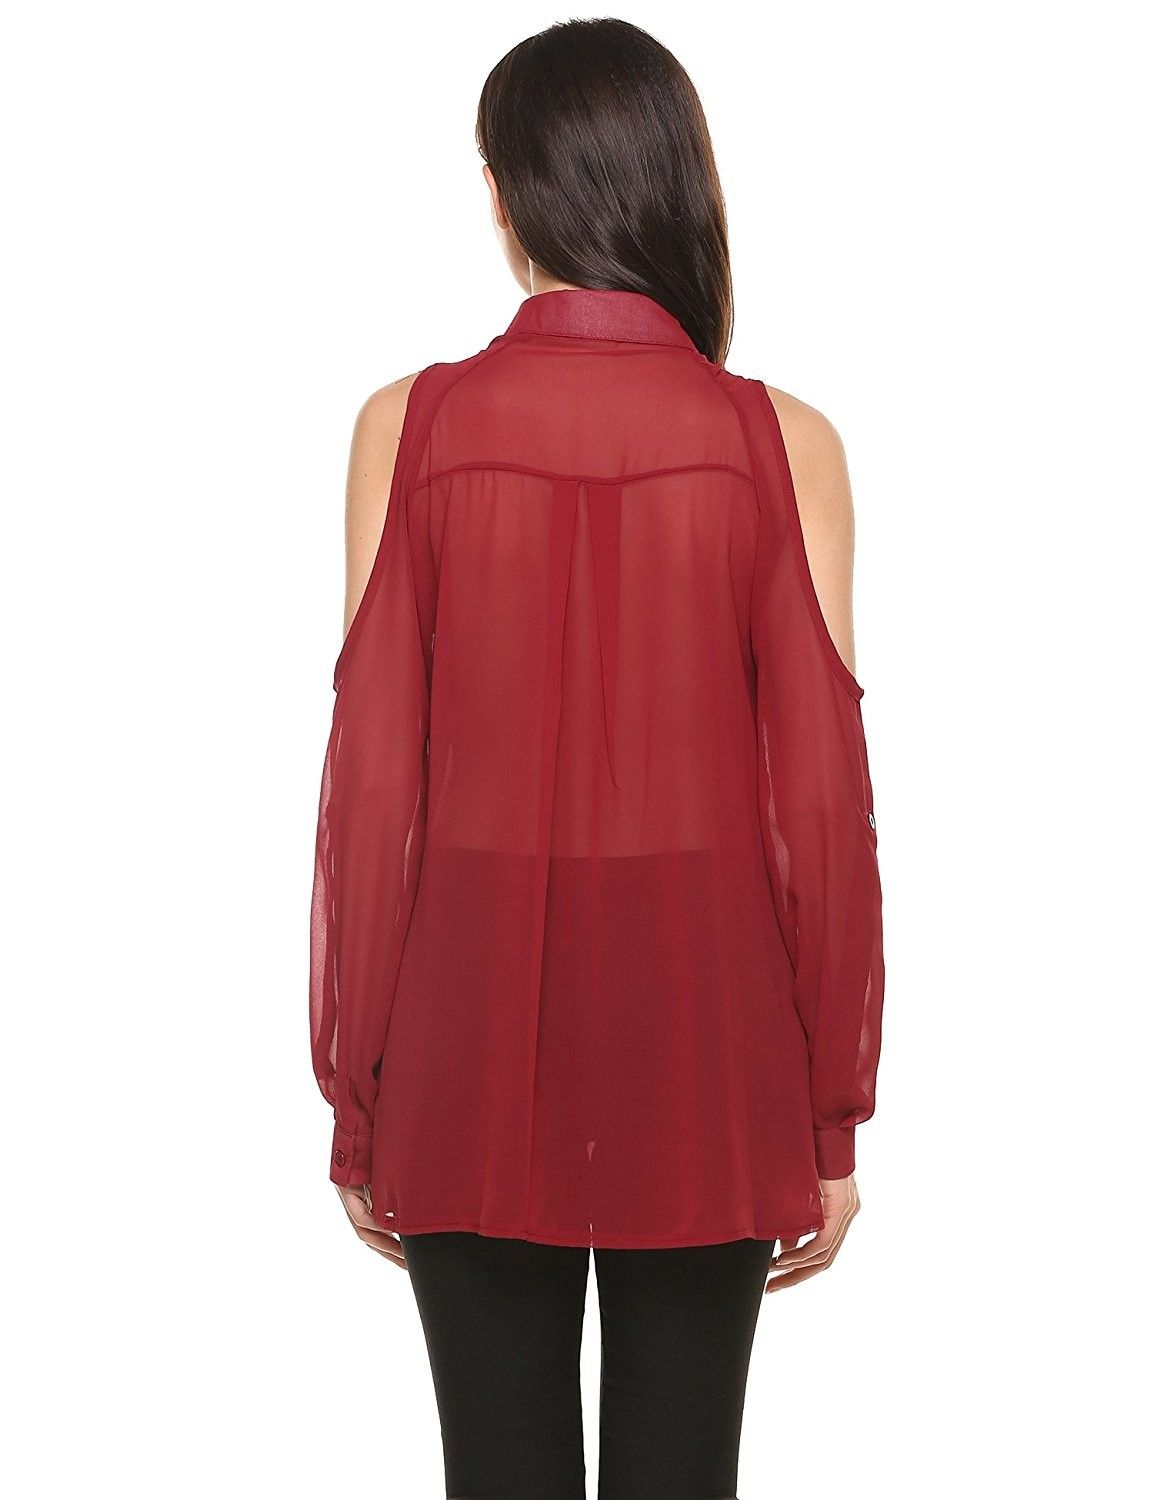 Womens Cold Shoulder Long Sleeve Collared Button Down Chiffon Blouse Tops Wine Red Cz17yk4tio5 Chiffon Tops Blouses Cold Shoulder Long Sleeve Chiffon Blouse